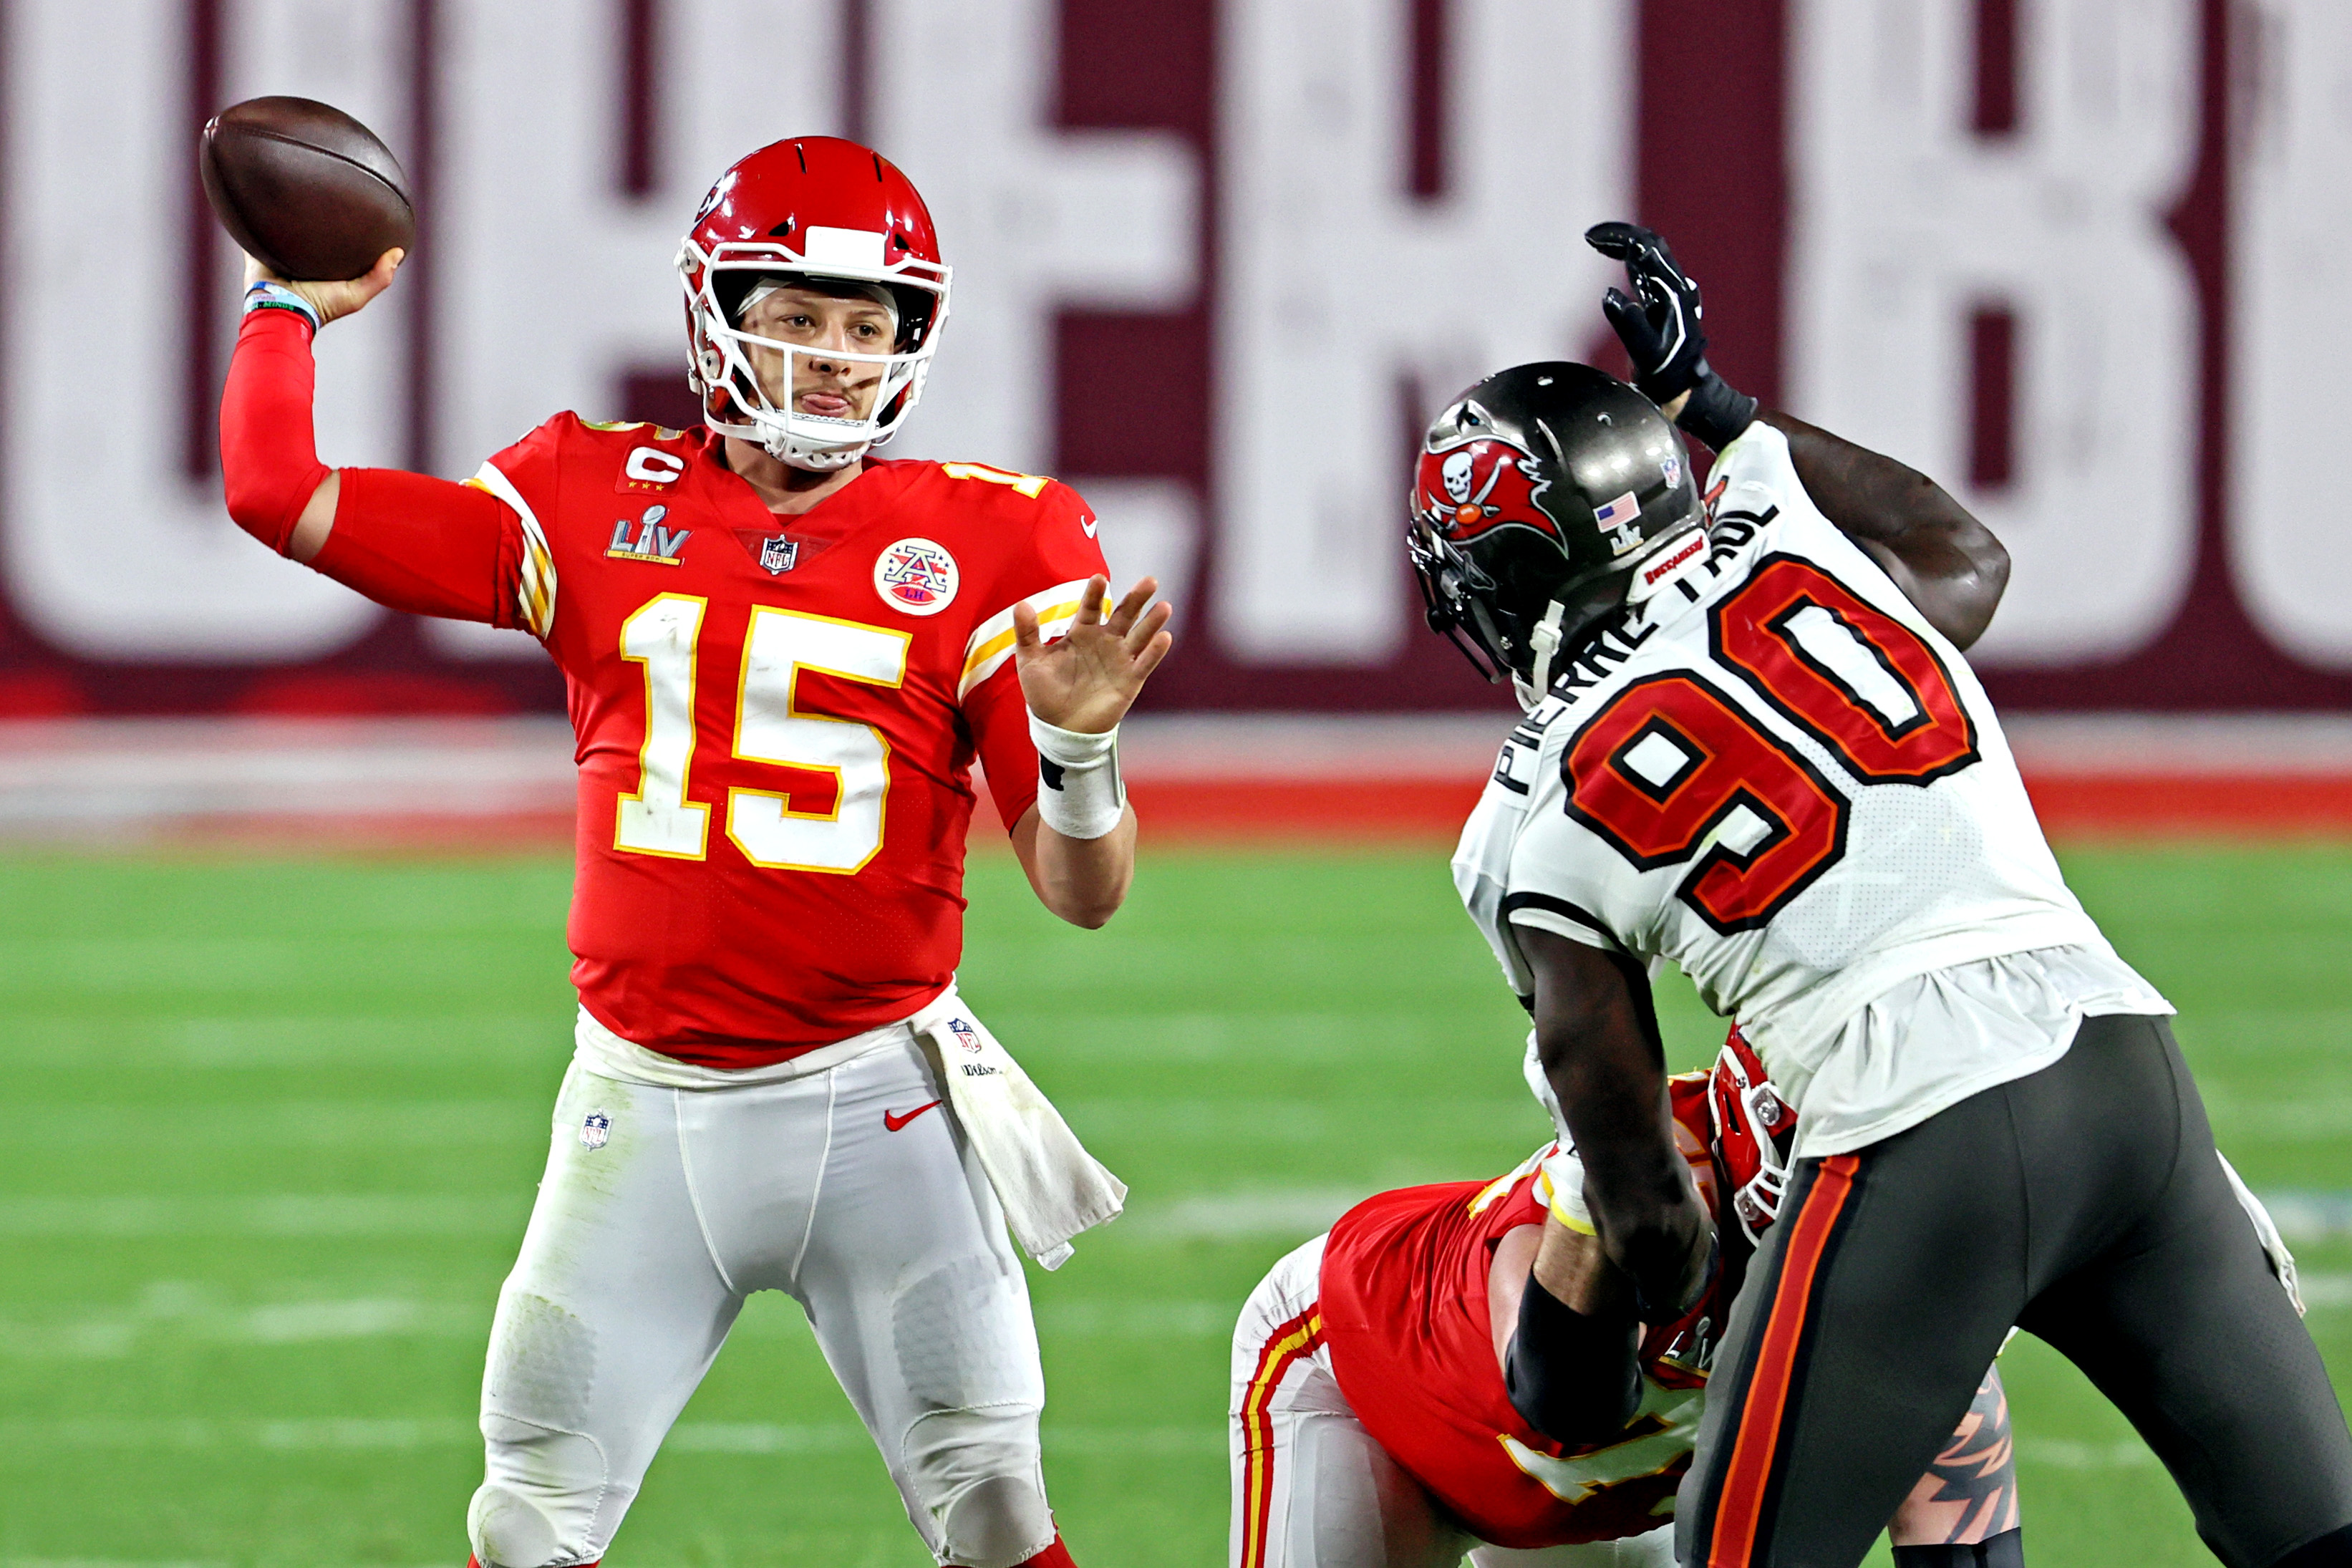 Kansas City Chiefs quarterback Patrick Mahomes throws a pass against Tampa Bay Buccaneers outside linebacker Jason Pierre-Paul during the fourth quarter in Super Bowl LV at Raymond James Stadium.